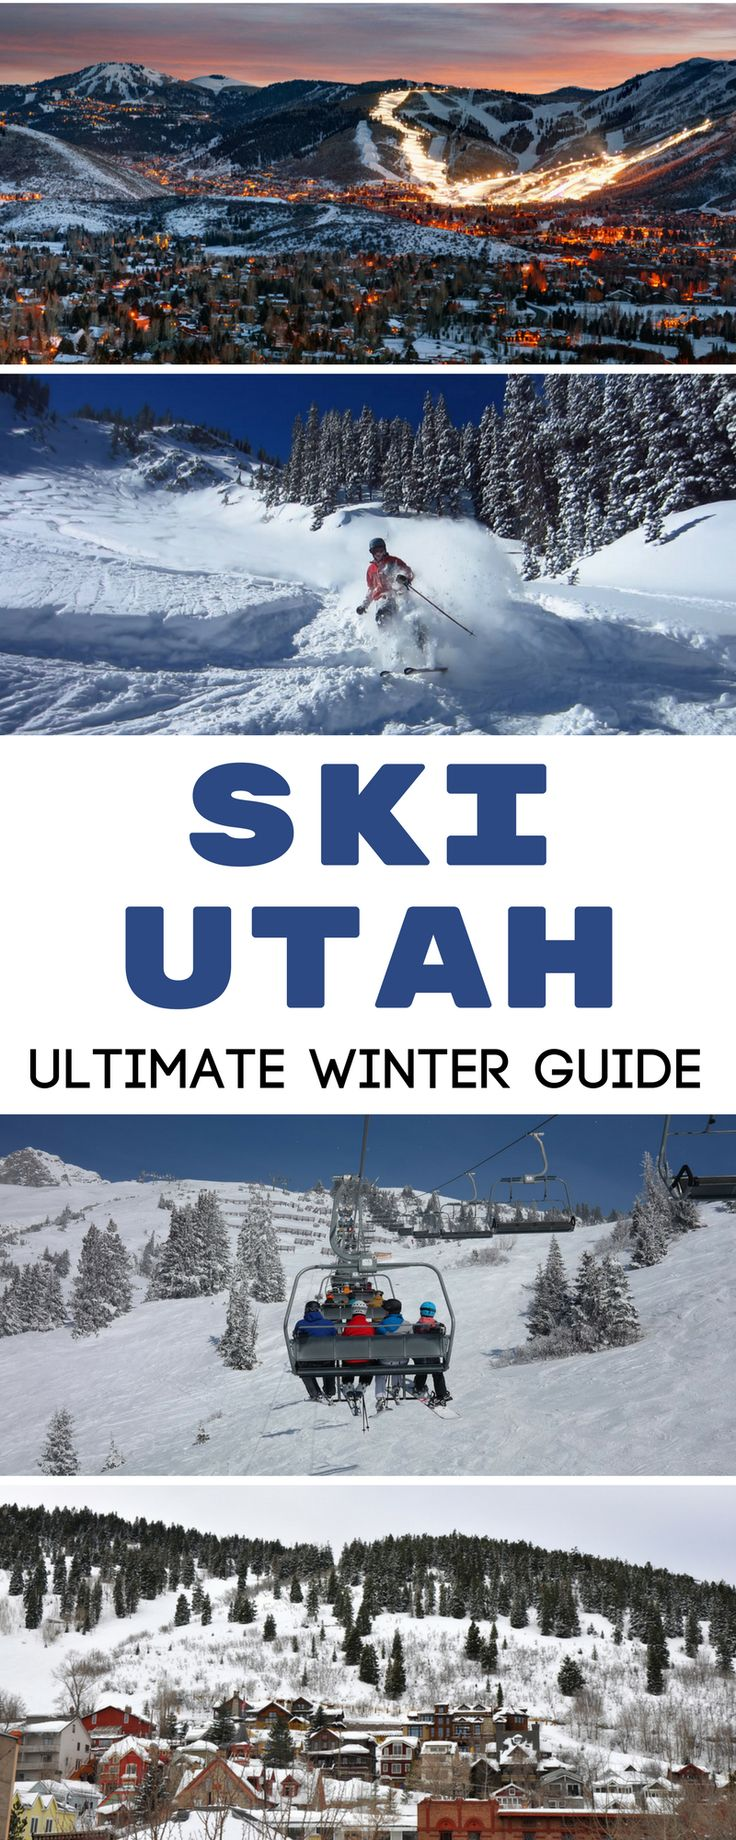 Think of a top ski destination in the USA and Utah probably comes to your mind. With infamous ski resorts such as Park City, Utah makes for an excellent winter ski trip location. This guide includes popular resorts such as Park City and Sundance, as well as some lesser know ski and snowboarding gems. Winter travel in Utah. | Travel Dudes Travel Community #Utah #WinterTravel